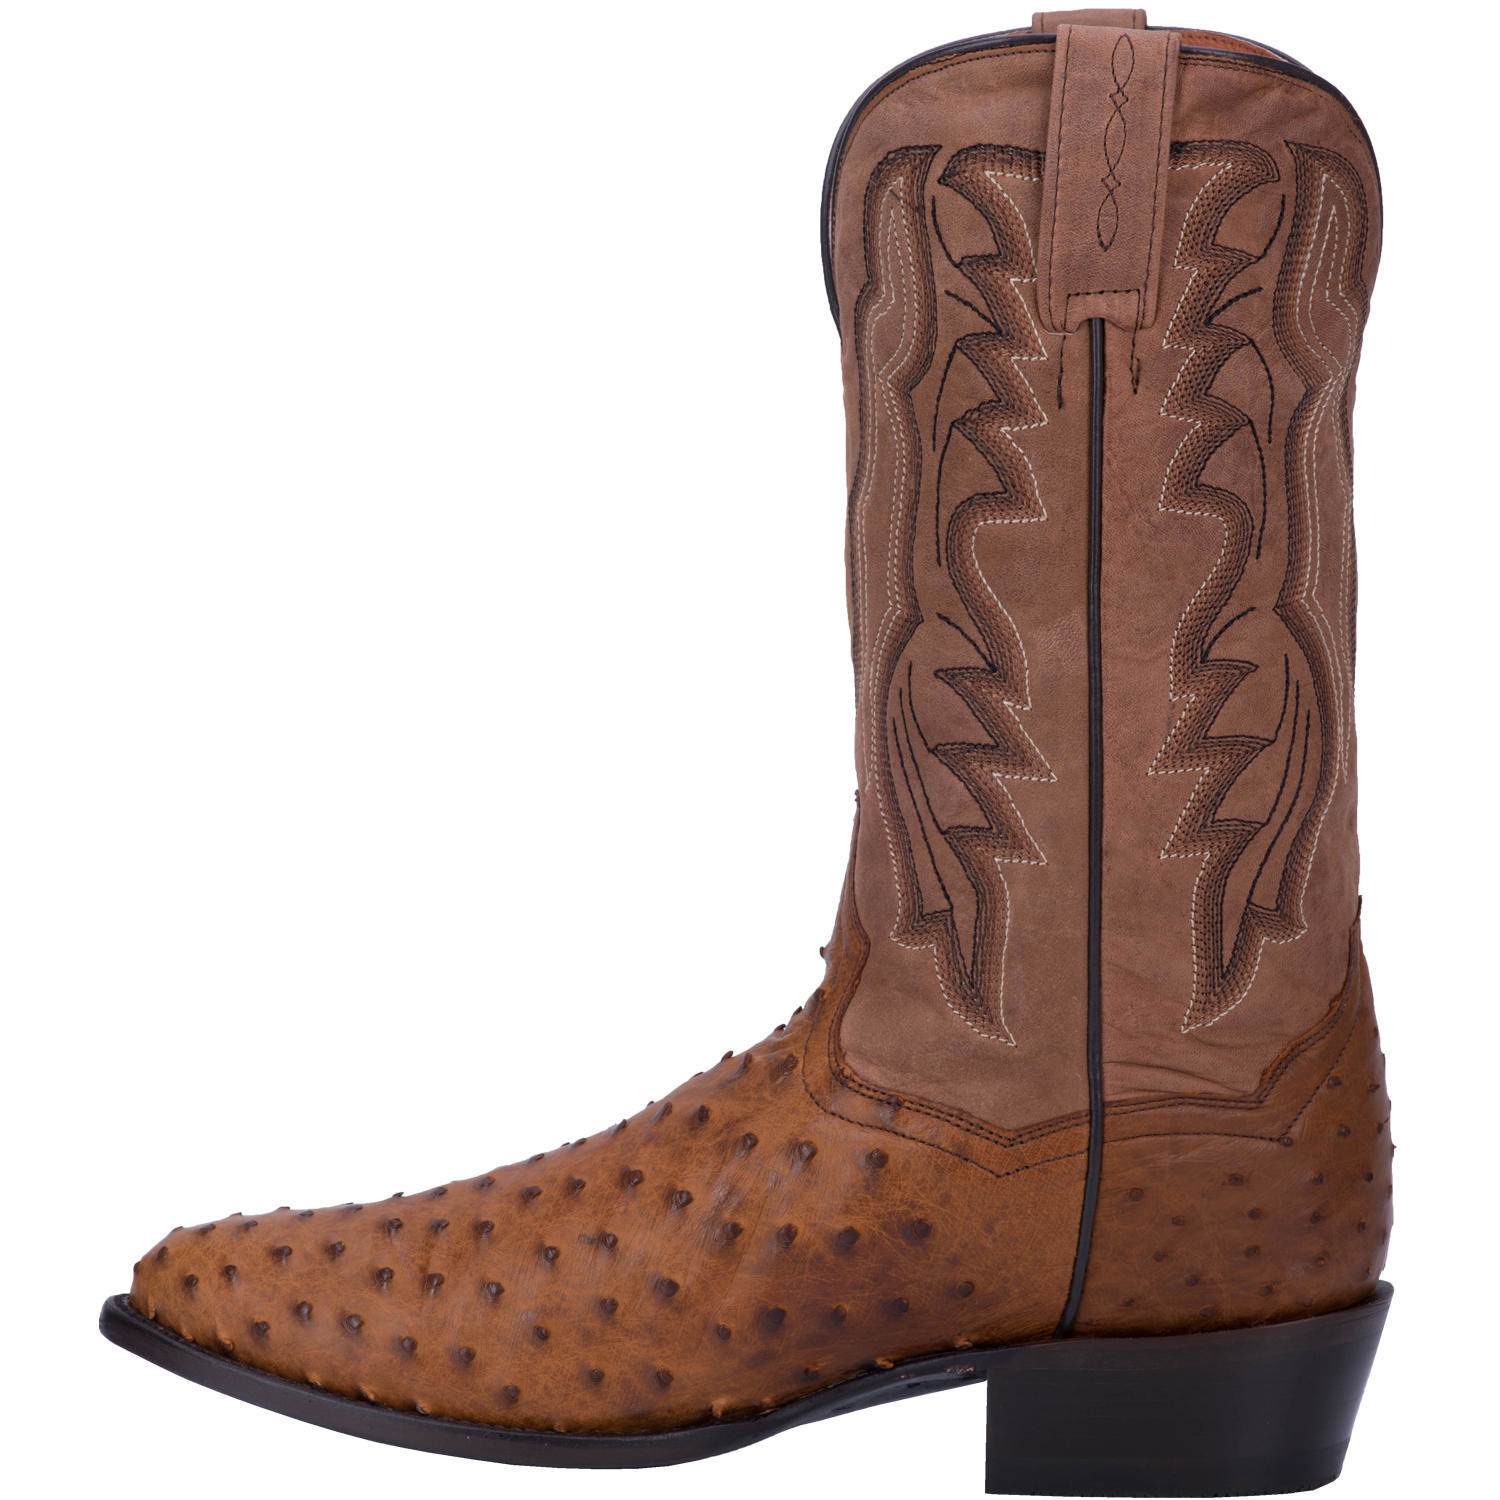 01a60ef662b Dan Post - MEN'S TEMPE FULL QUILL OSTRICH BOOT DP2323